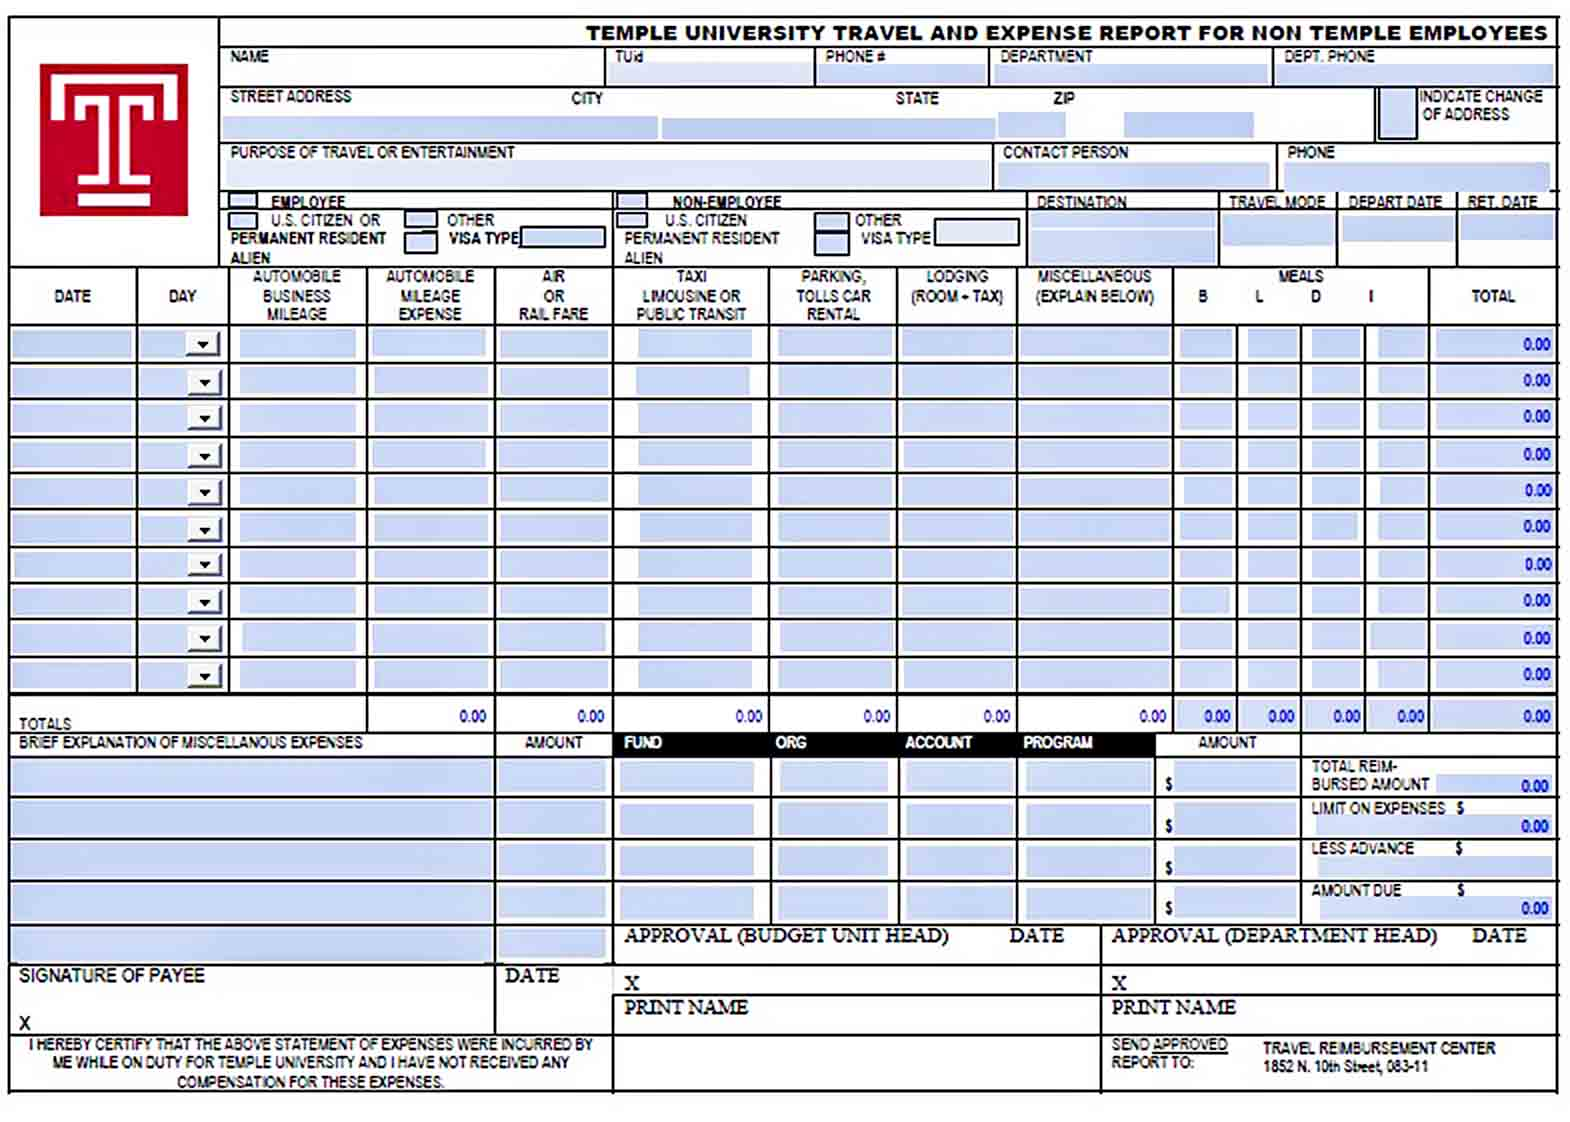 Templates Employee Travel and Expense Report